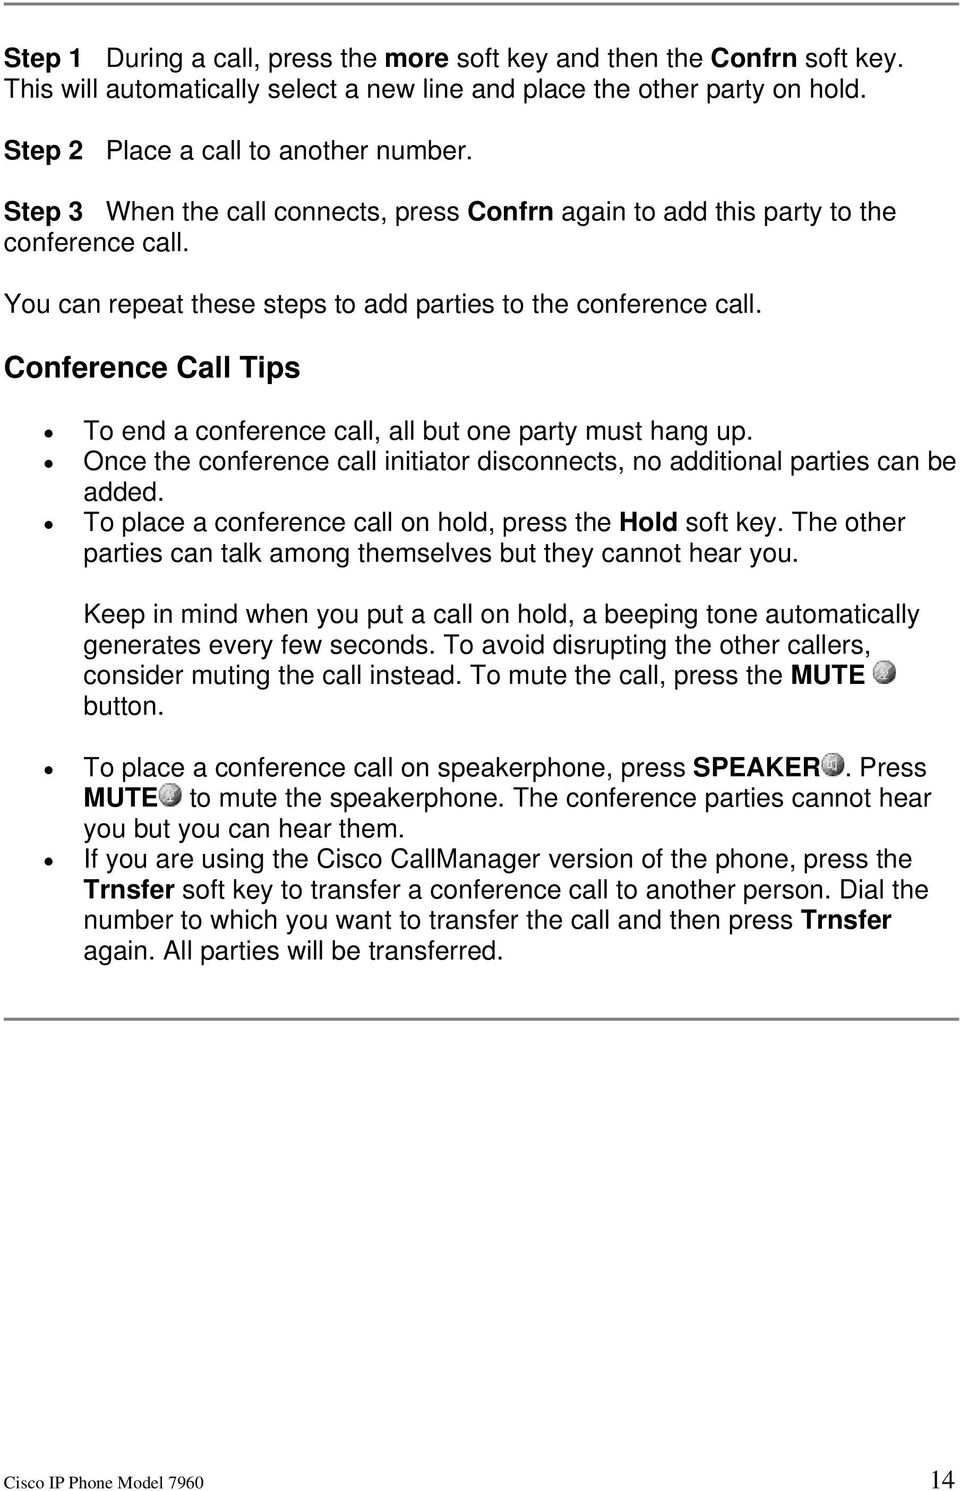 Conference Call Tips To end a conference call, all but one party must hang up. Once the conference call initiator disconnects, no additional parties can be added.